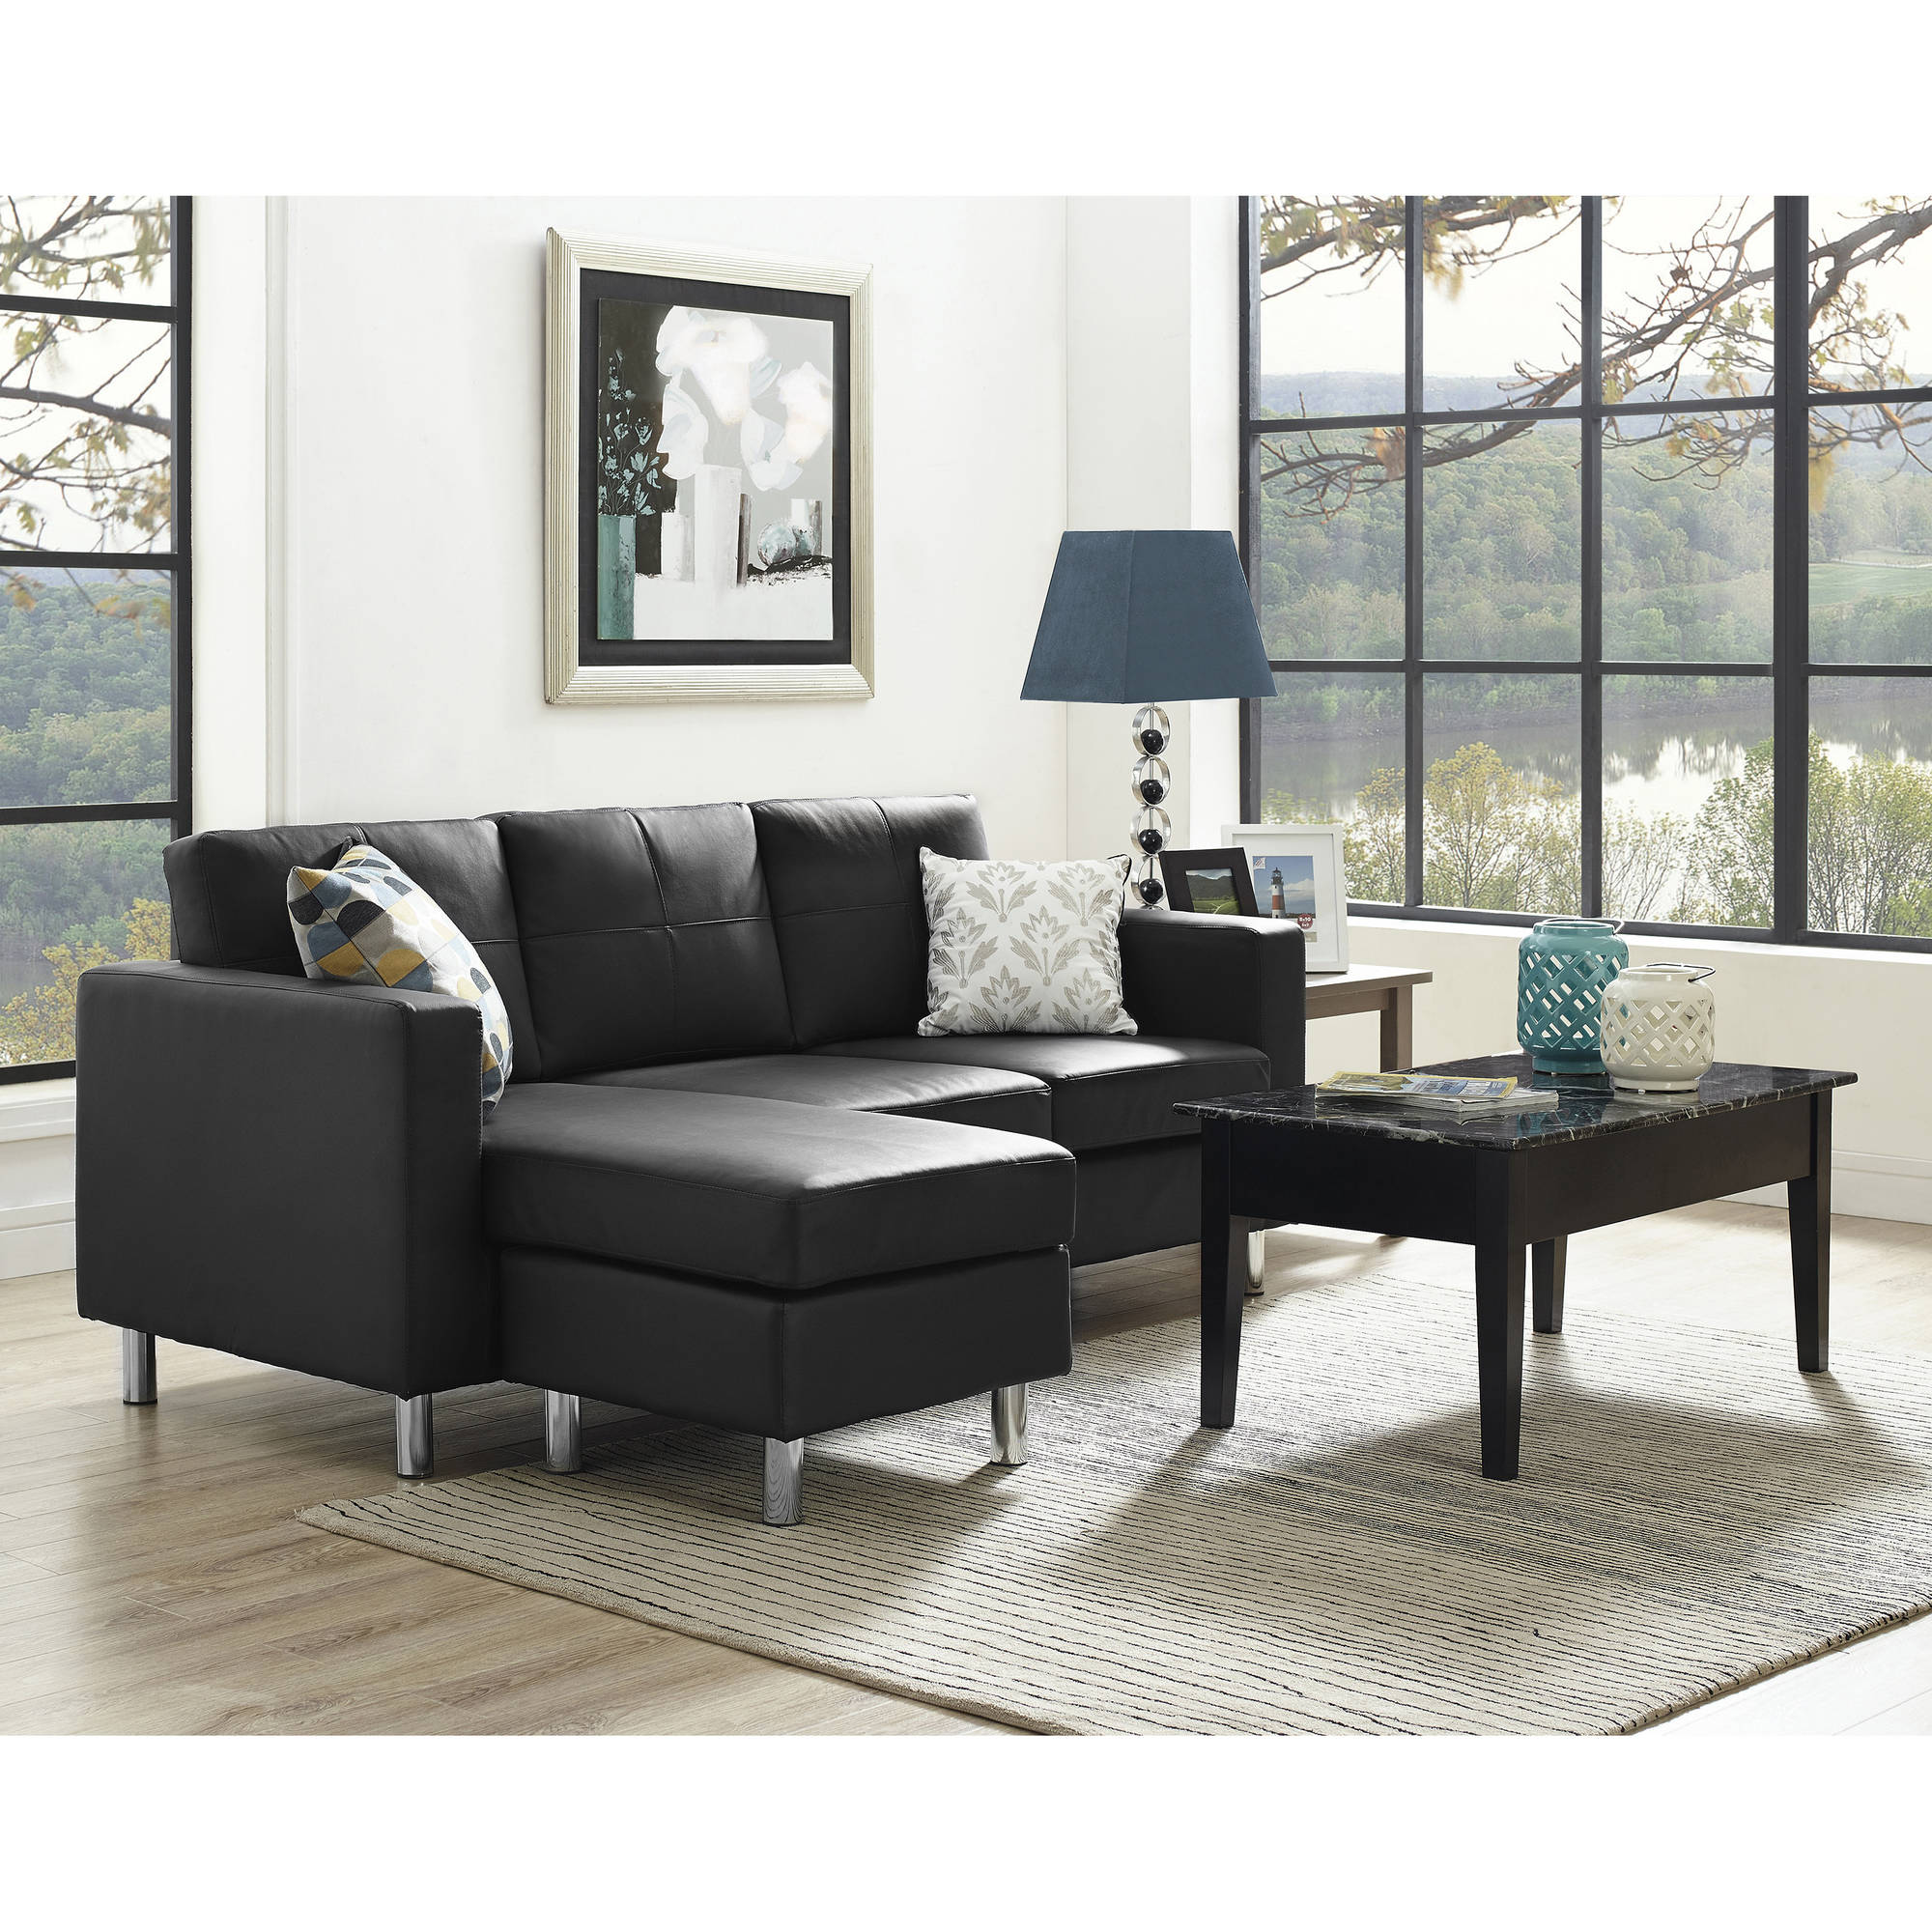 Amazing Small Spaces Configurable Sectional Sofa, Multiple Colors